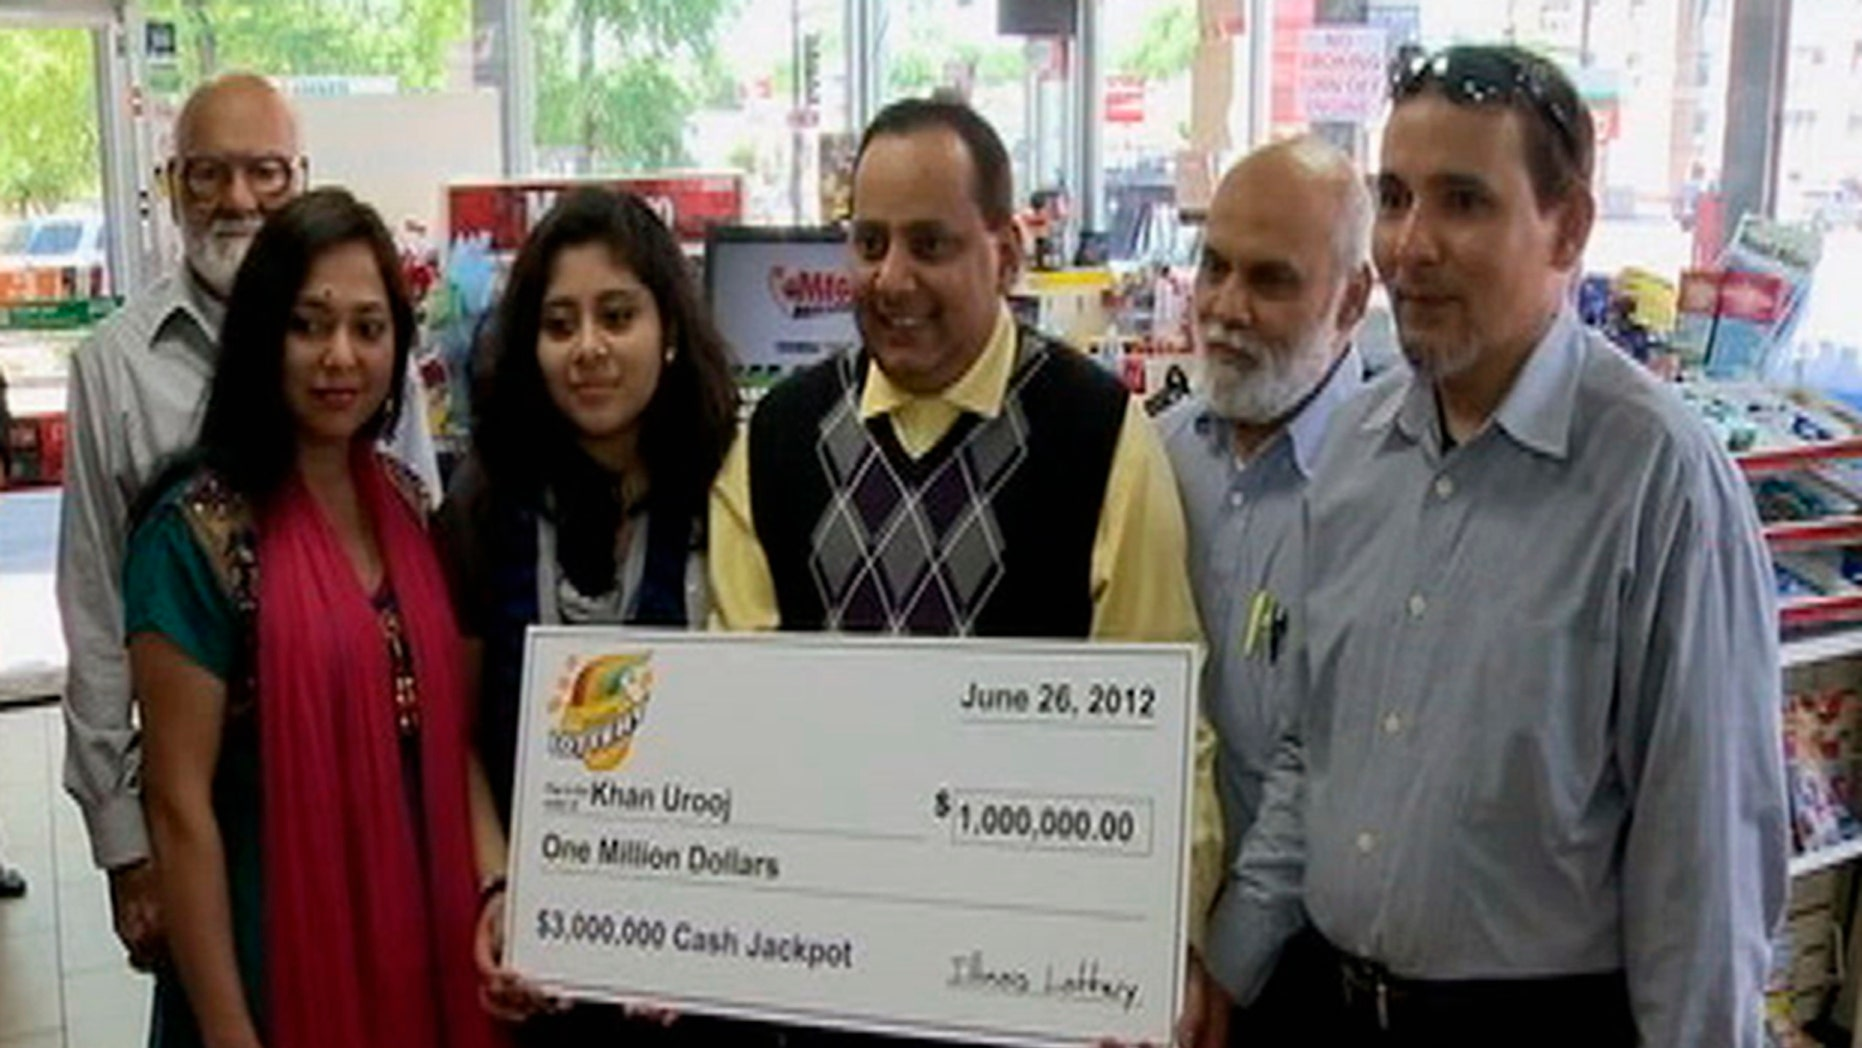 June 2012: This photo provided by WMAQ-TV in Chicago shows Urooj Khan, center, holding a ceremonial check in Chicago for $1 million as winner of an Illinois instant lottery game.